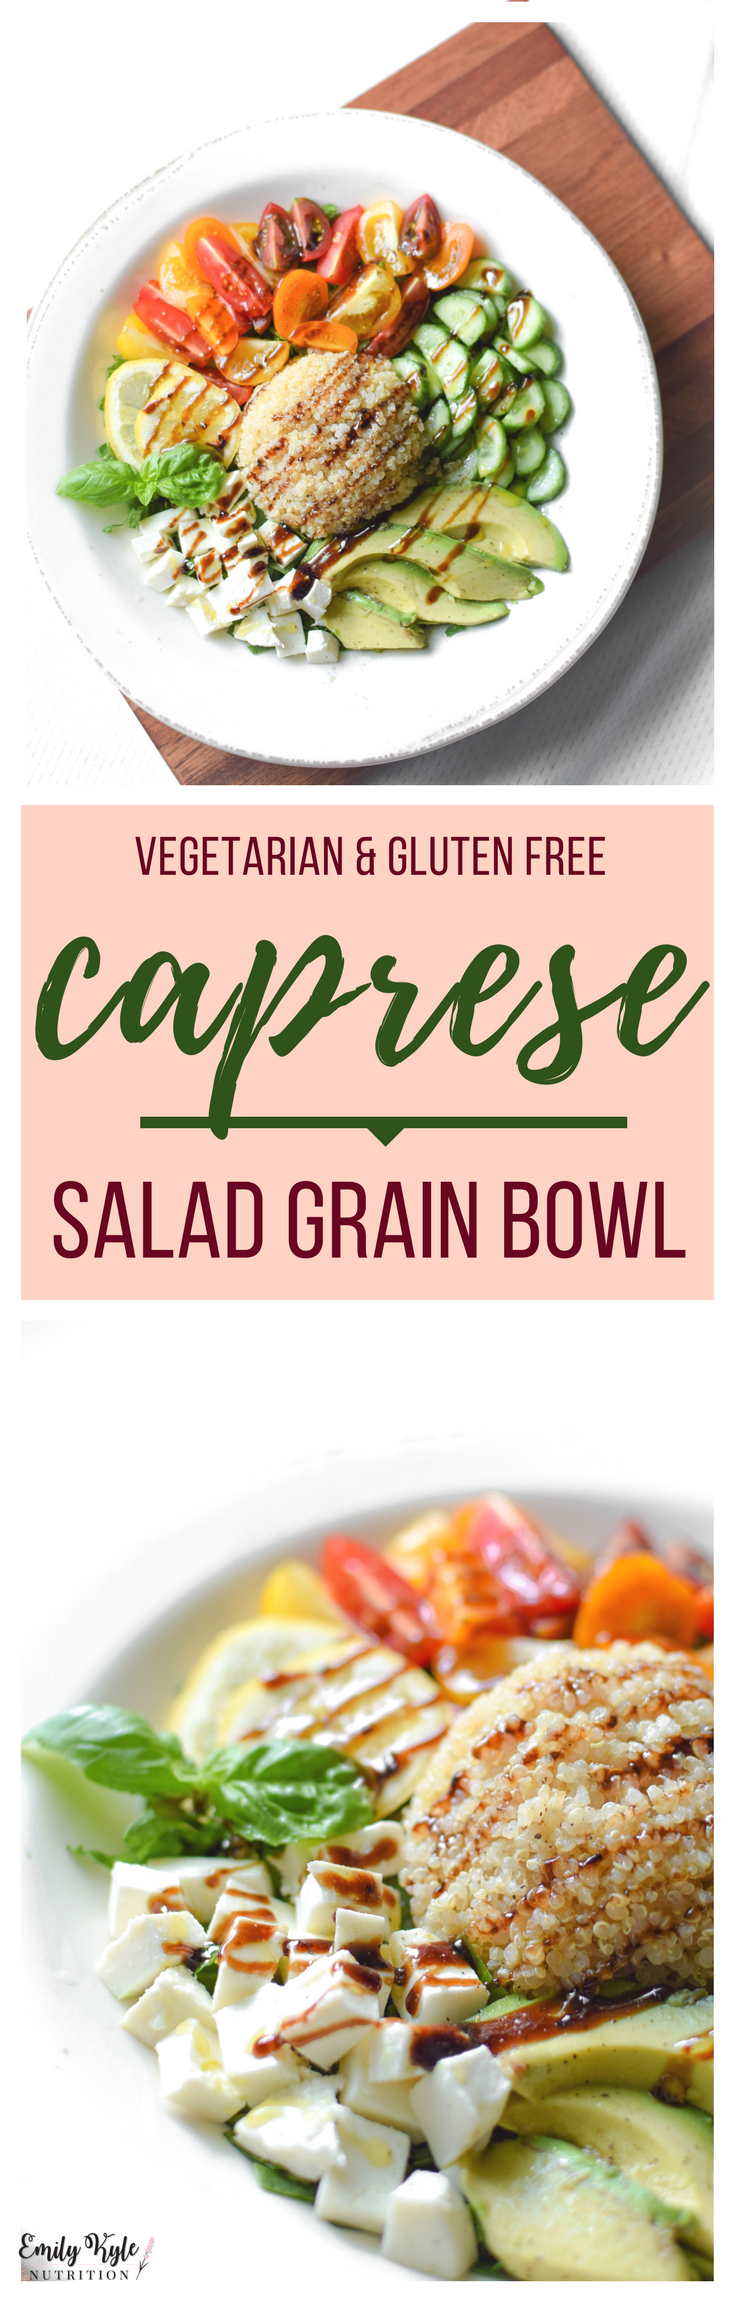 Whether it is for breakfast, lunch, or dinner, everyone will love this fresh, savory and naturally gluten-free Caprese Salad Grain Bowl anytime of the day!